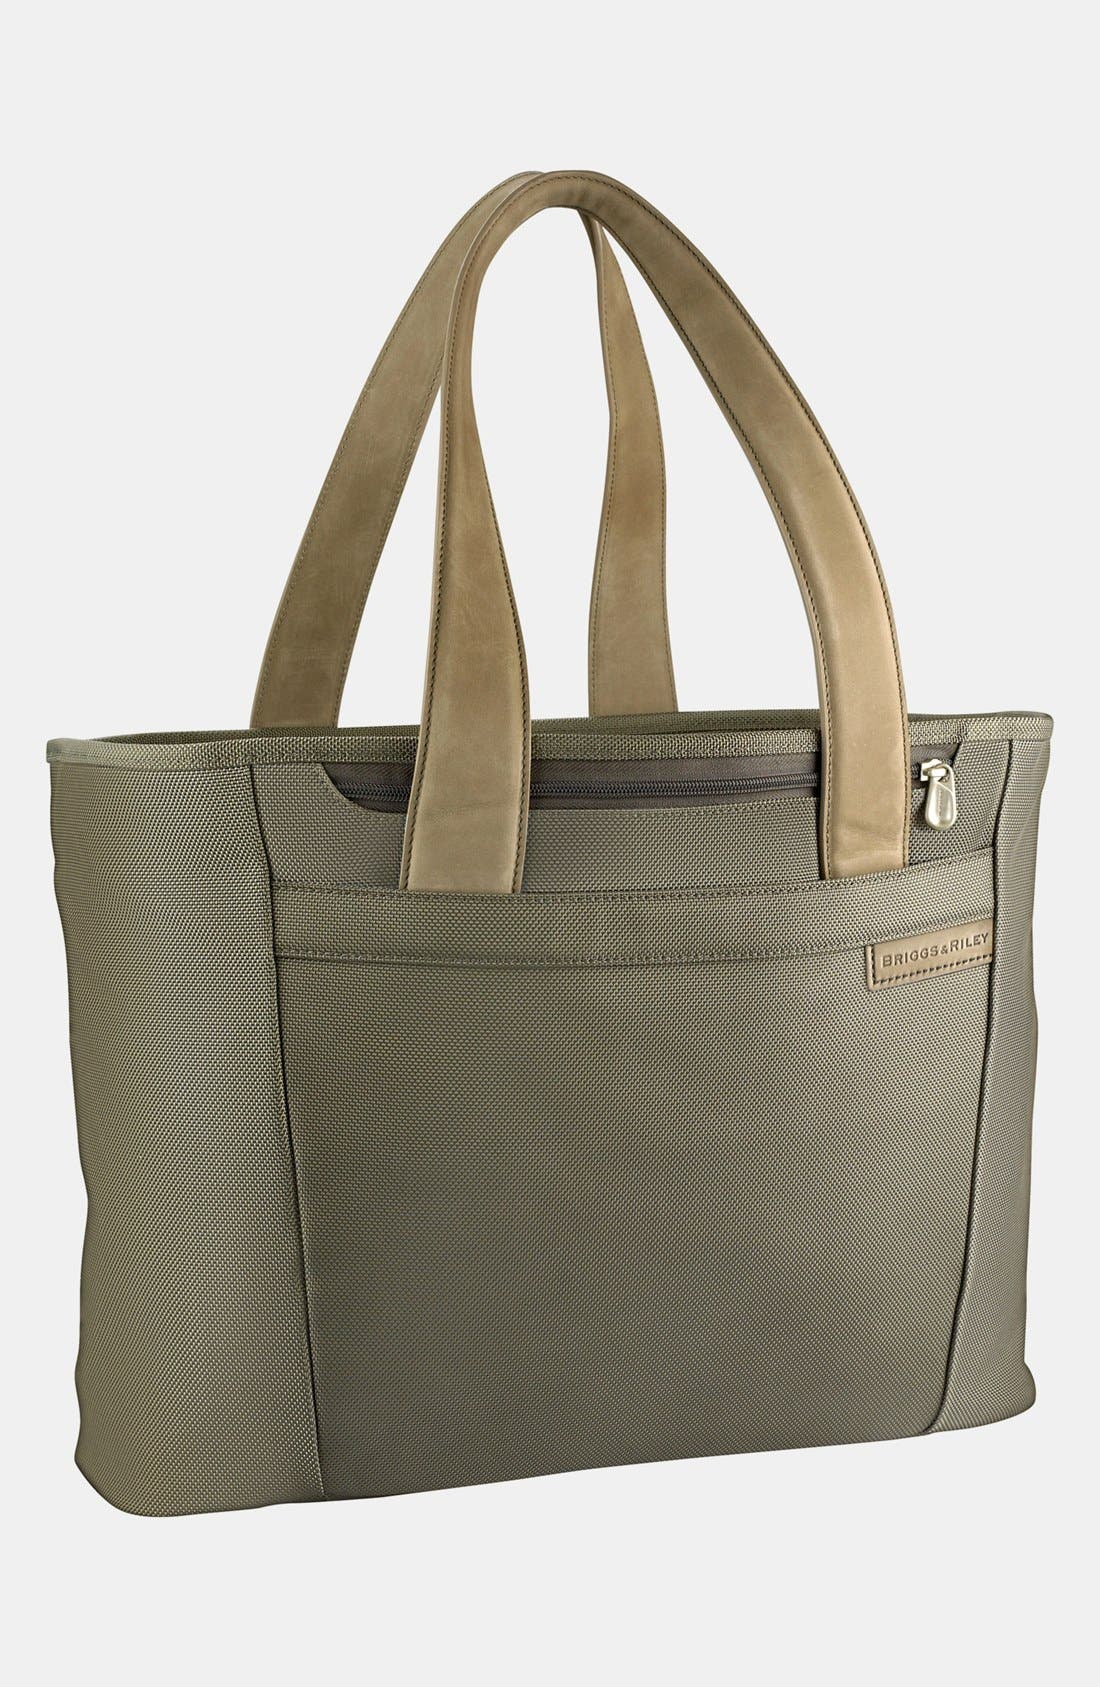 Main Image - Briggs & Riley 'Large Baseline' Shopping Tote